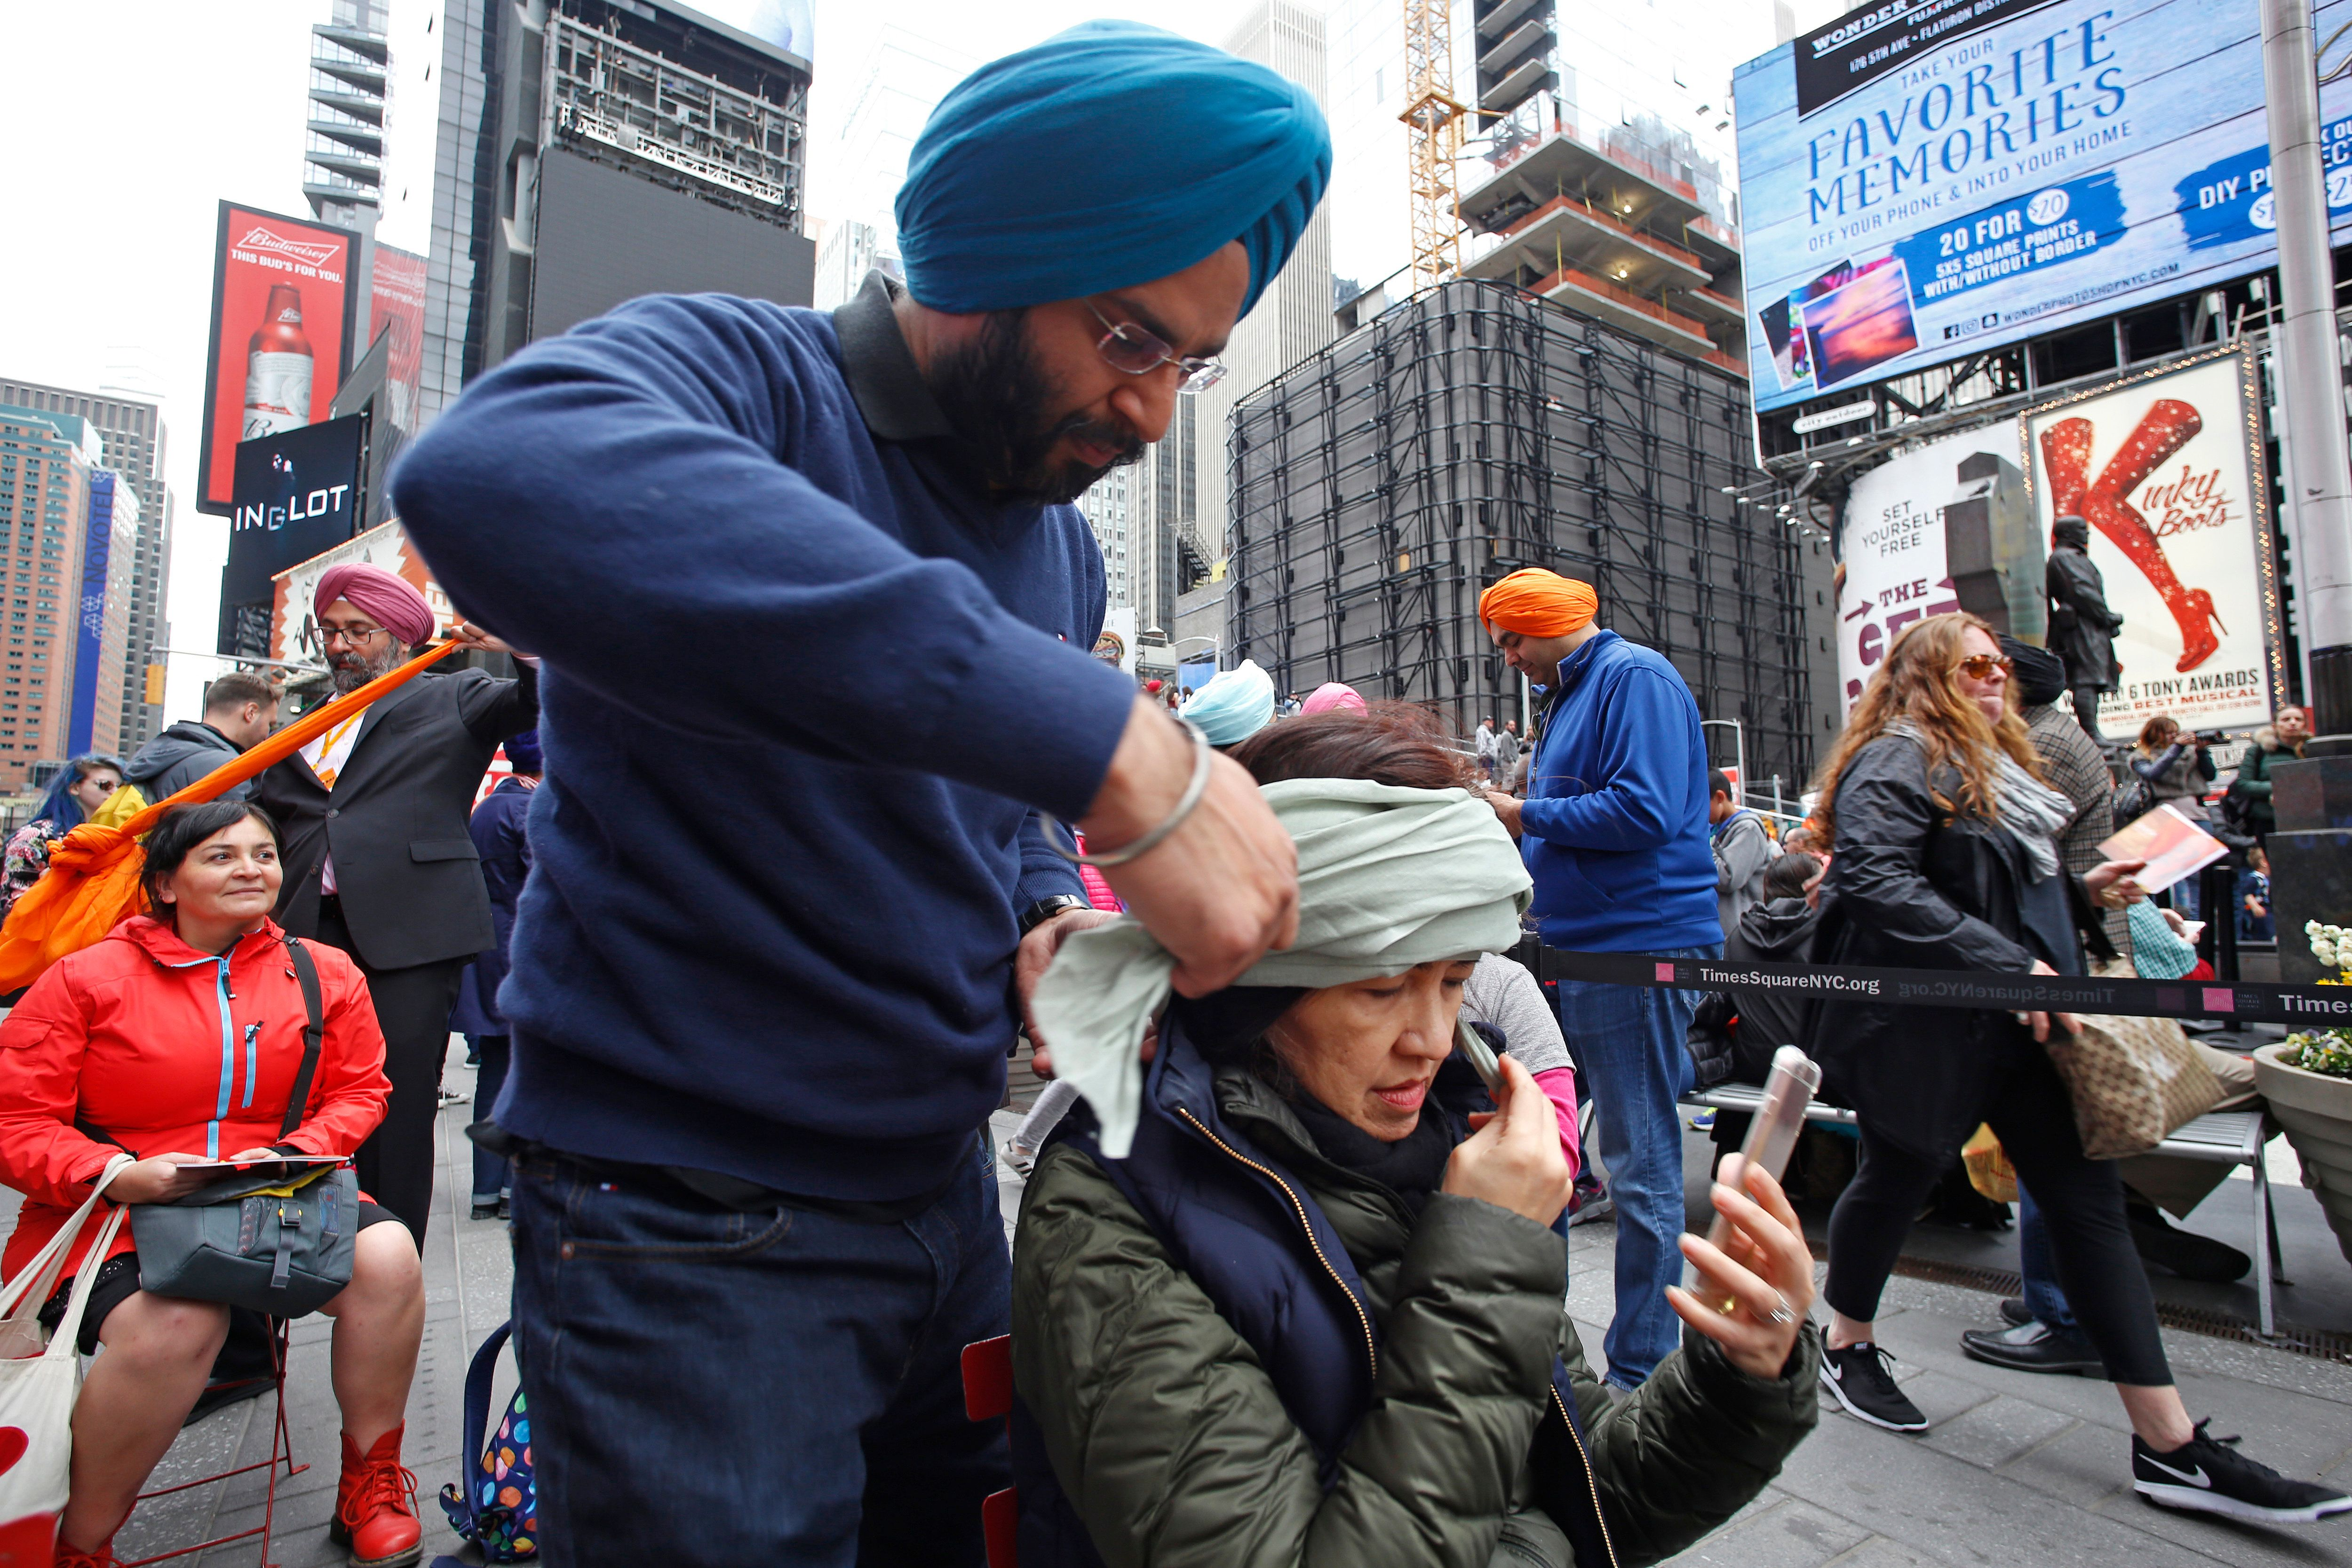 Sikhs of New York organizeda Turban Day in Times Square. Volunteers were on hand to help tie traditional...